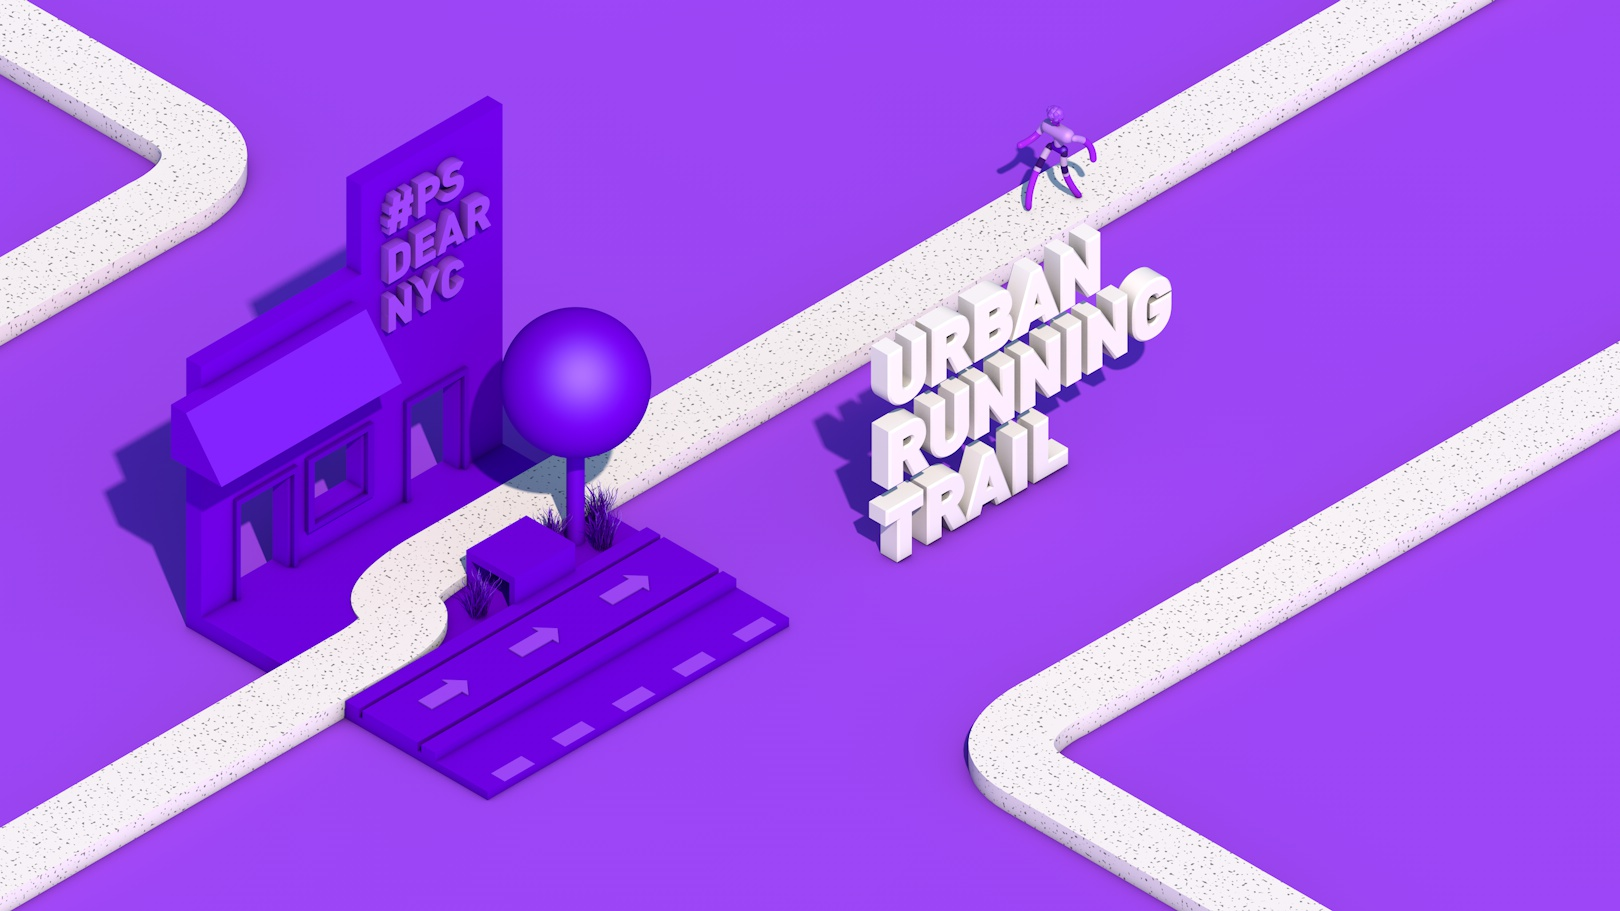 #PSDearNYC - Experiment No.01 -An exercise in Urban Planning